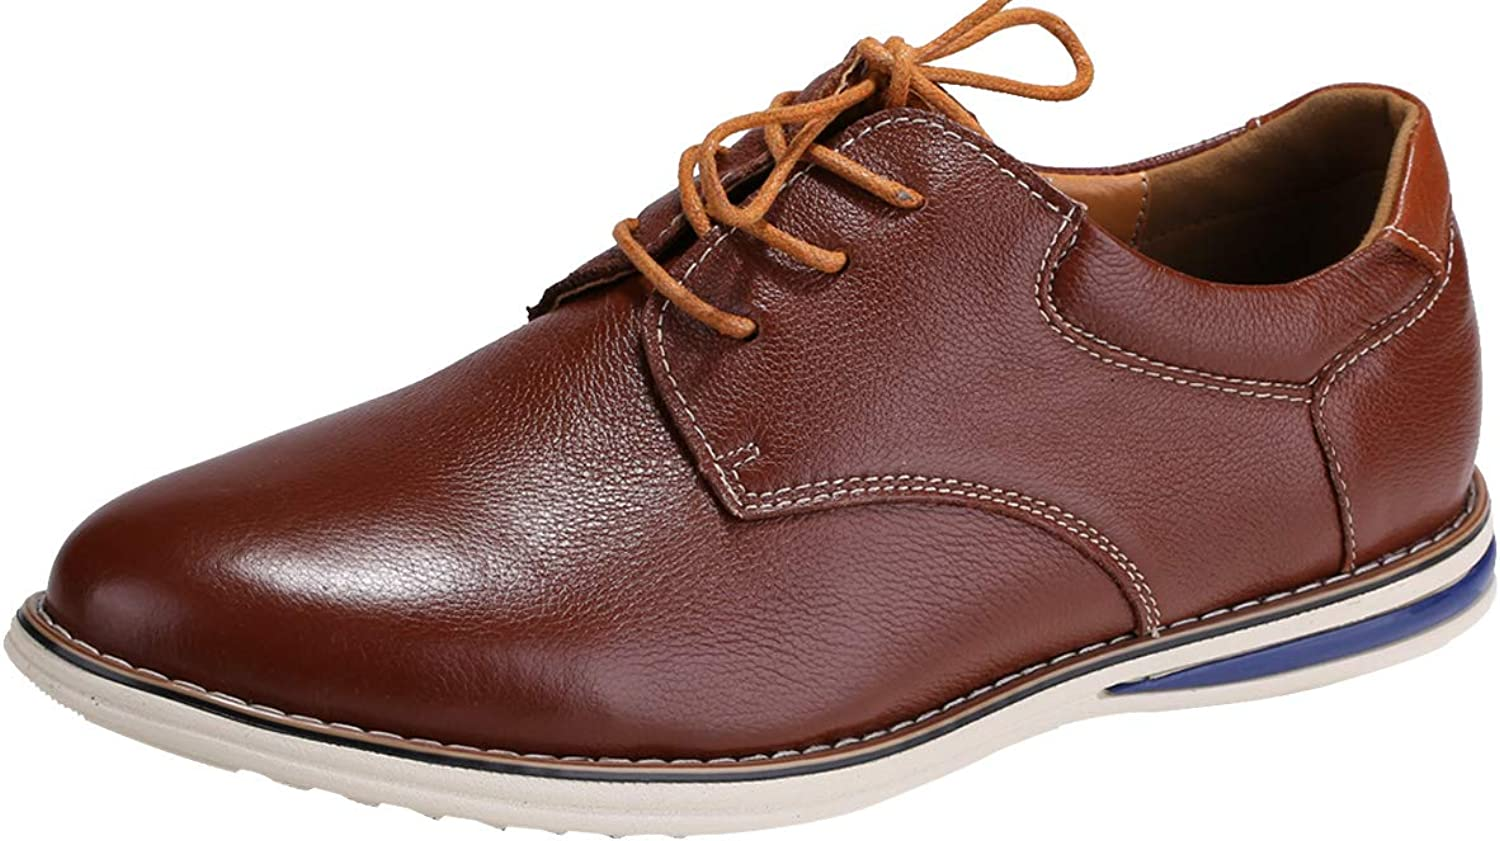 BIMUDUIYU Men's Leather Lace Up Casual Oxfords Dress shoes (9.5, Brown)